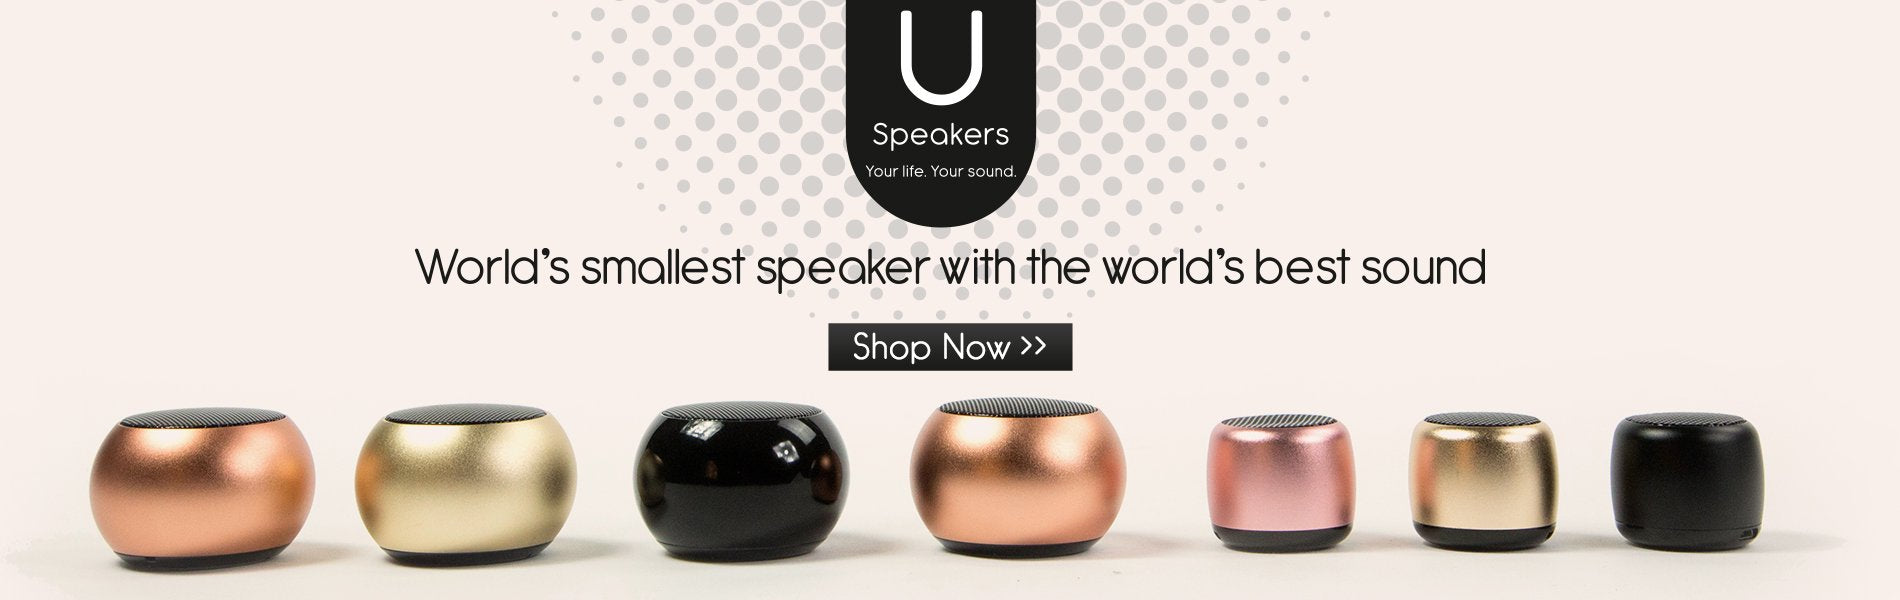 U Speakers-World's Smallest Speakers with Great Sound